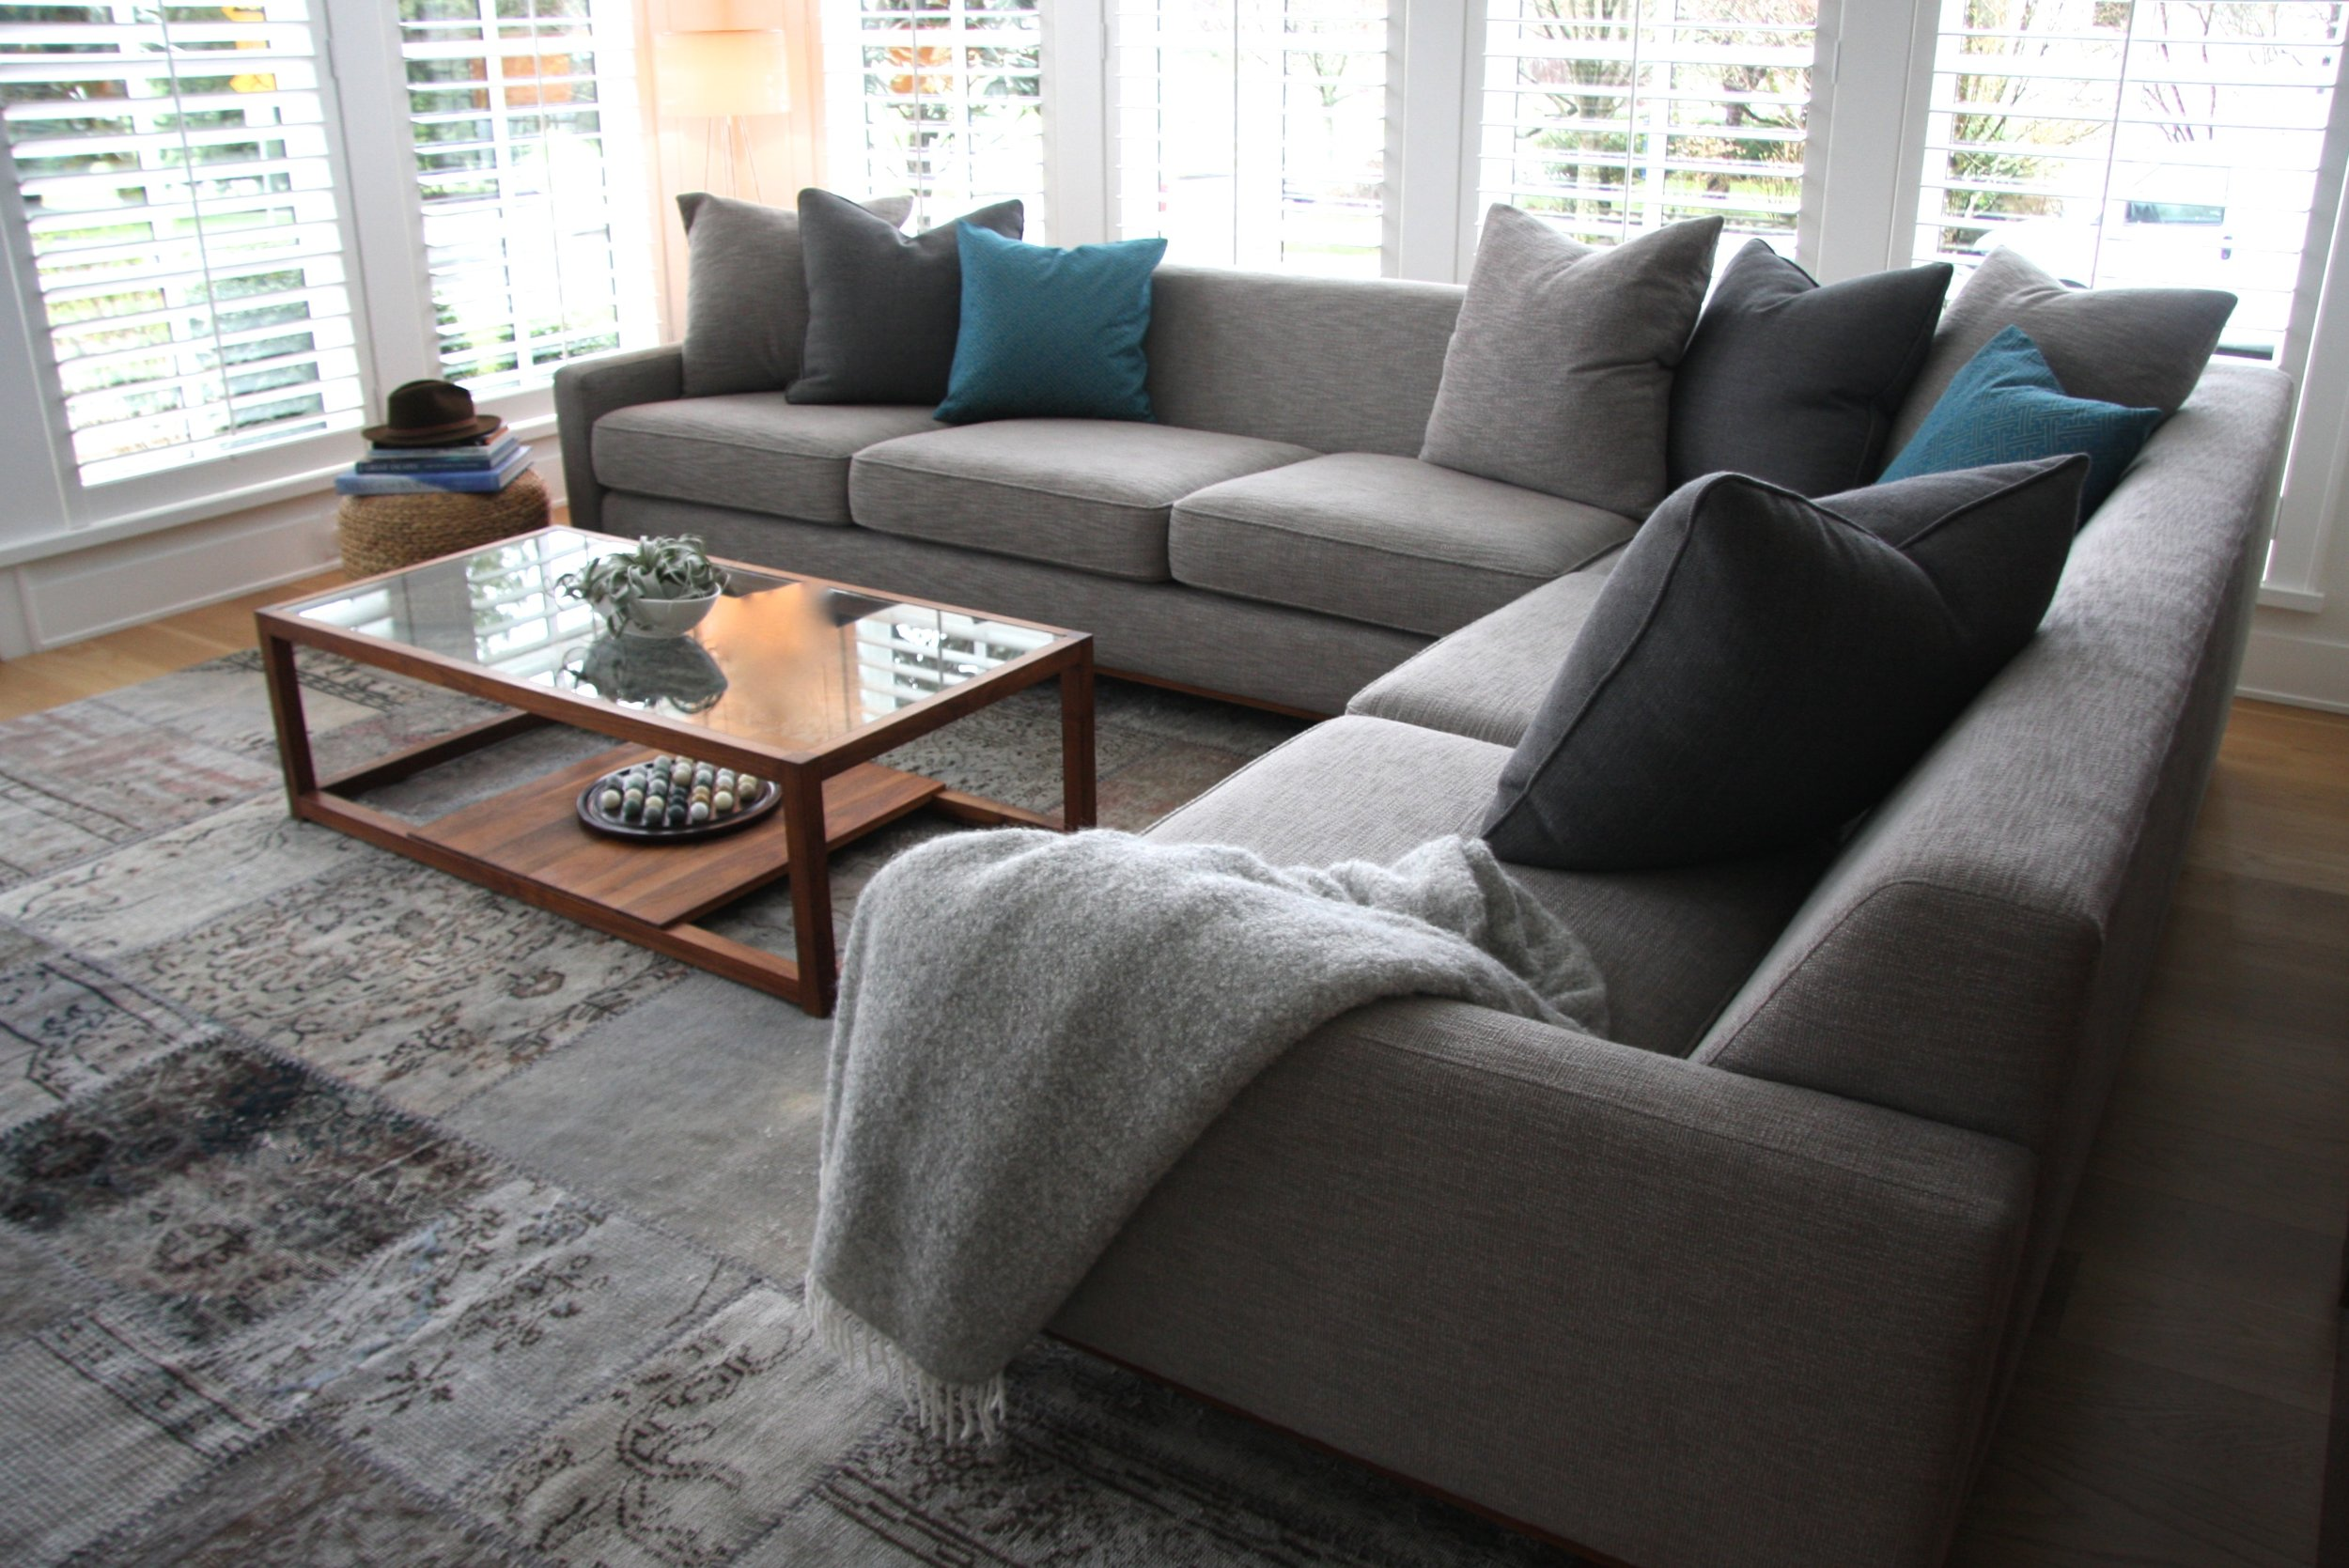 Bespoke sectional sofa with a mix of comfy toss pillows designed by Zacharko Yustin Architects.